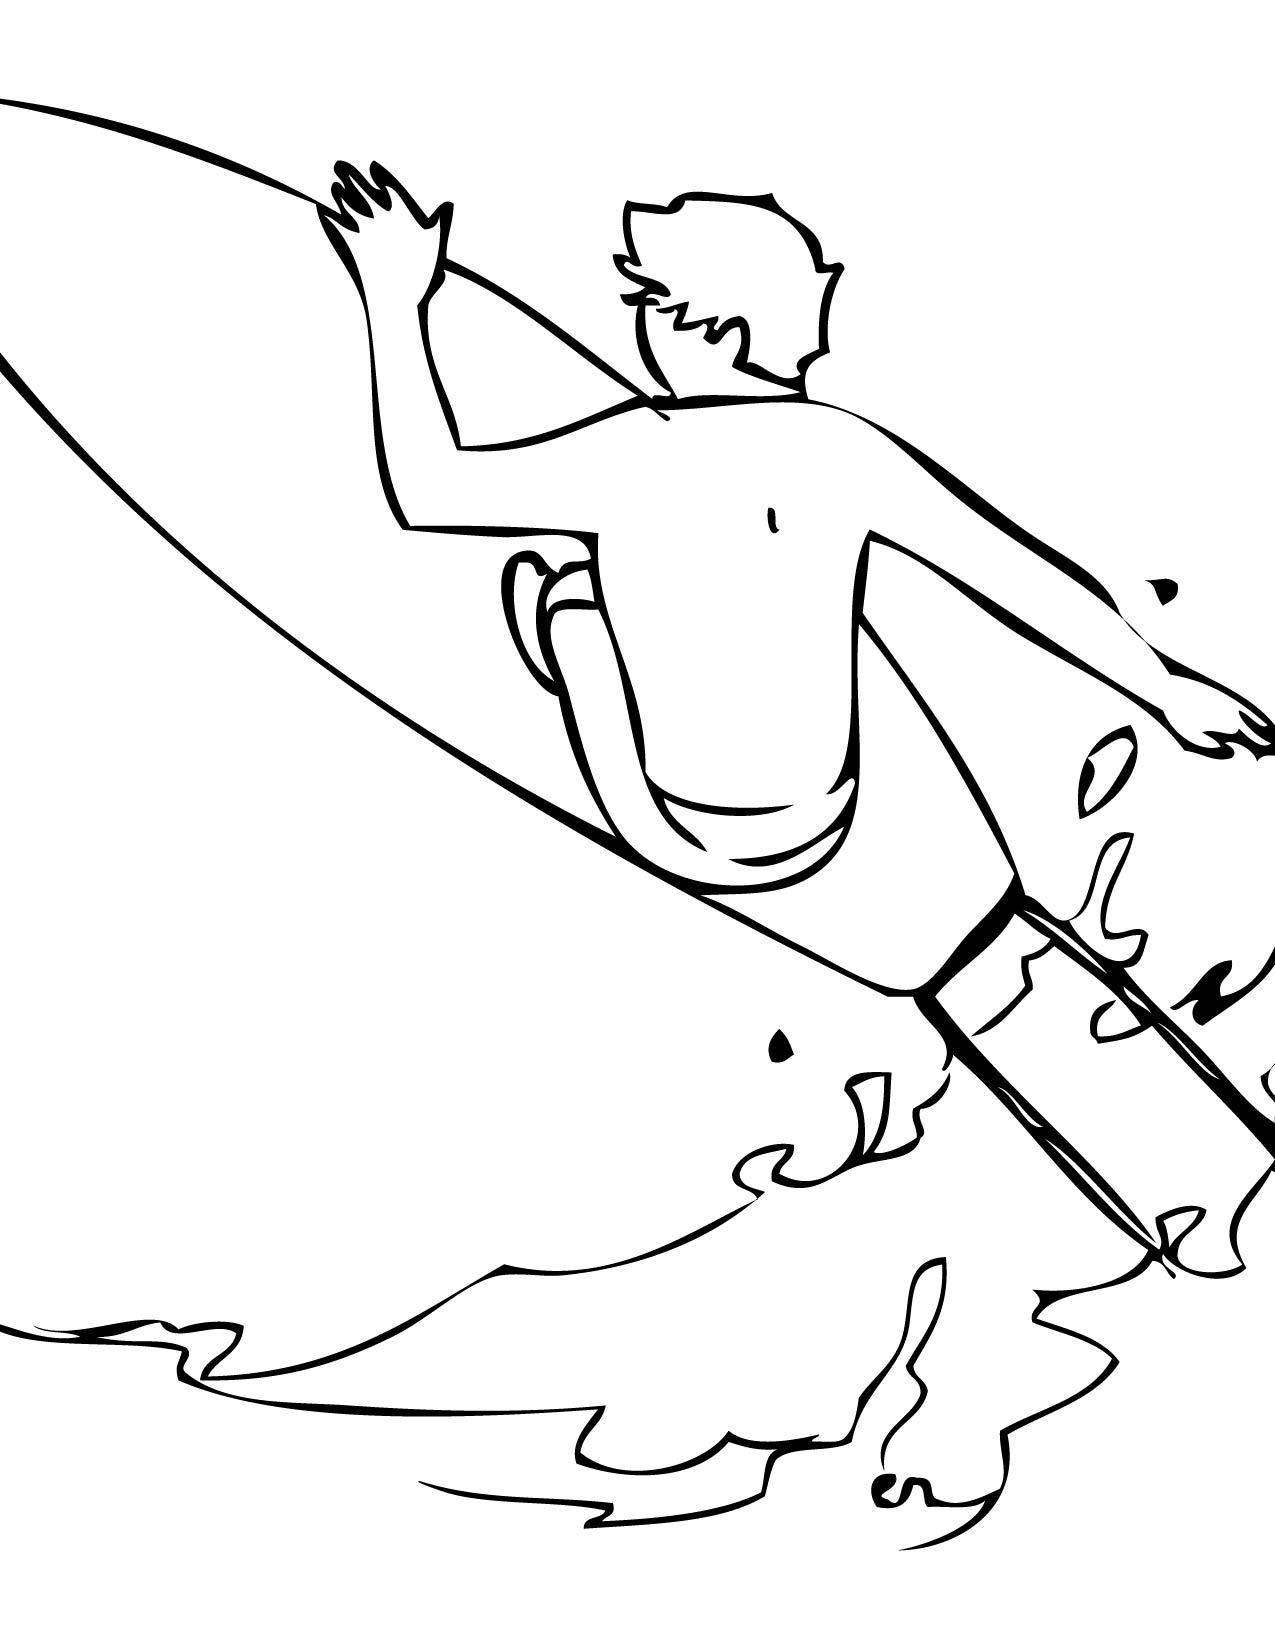 surfing coloring pages surfboard coloring sheet xyzcoloring coloring surfing pages